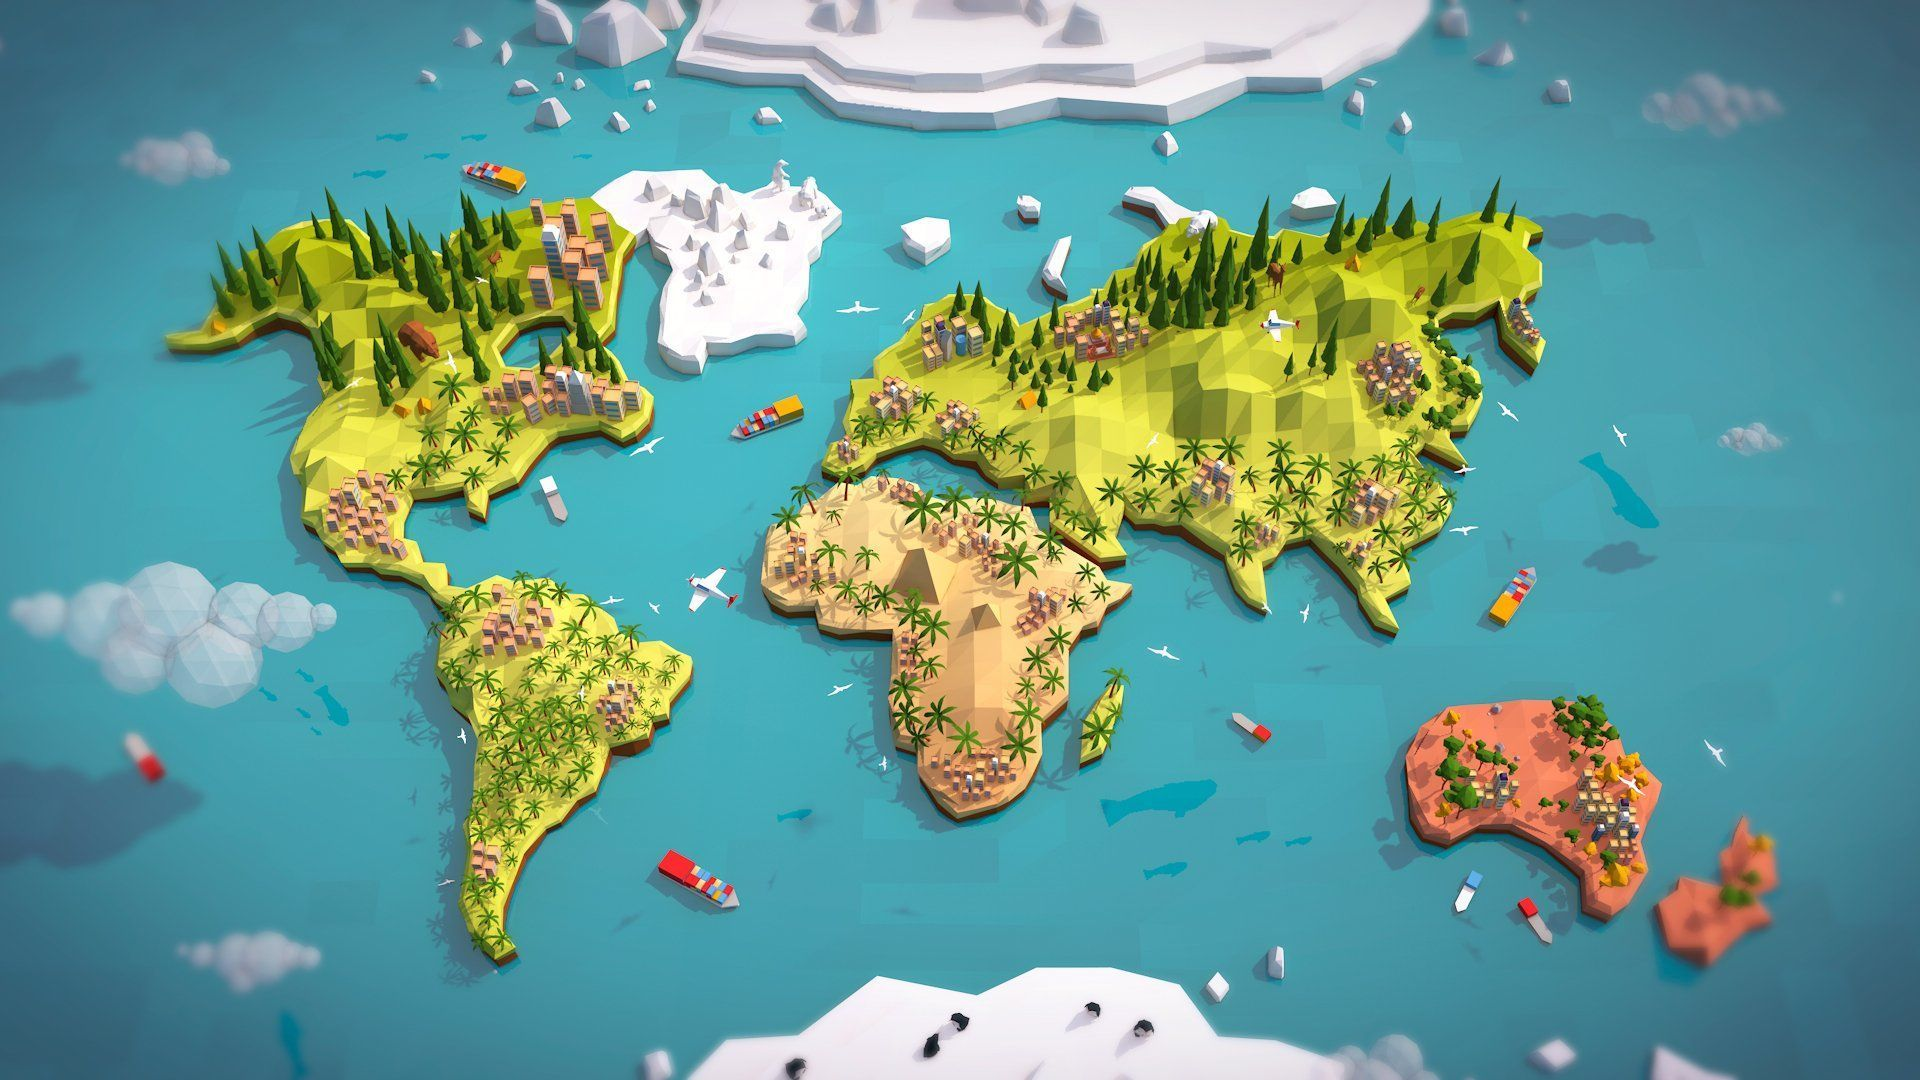 Cartoon low poly earth world map anton moek bitgem environments cartoon low poly earth world map gumiabroncs Gallery